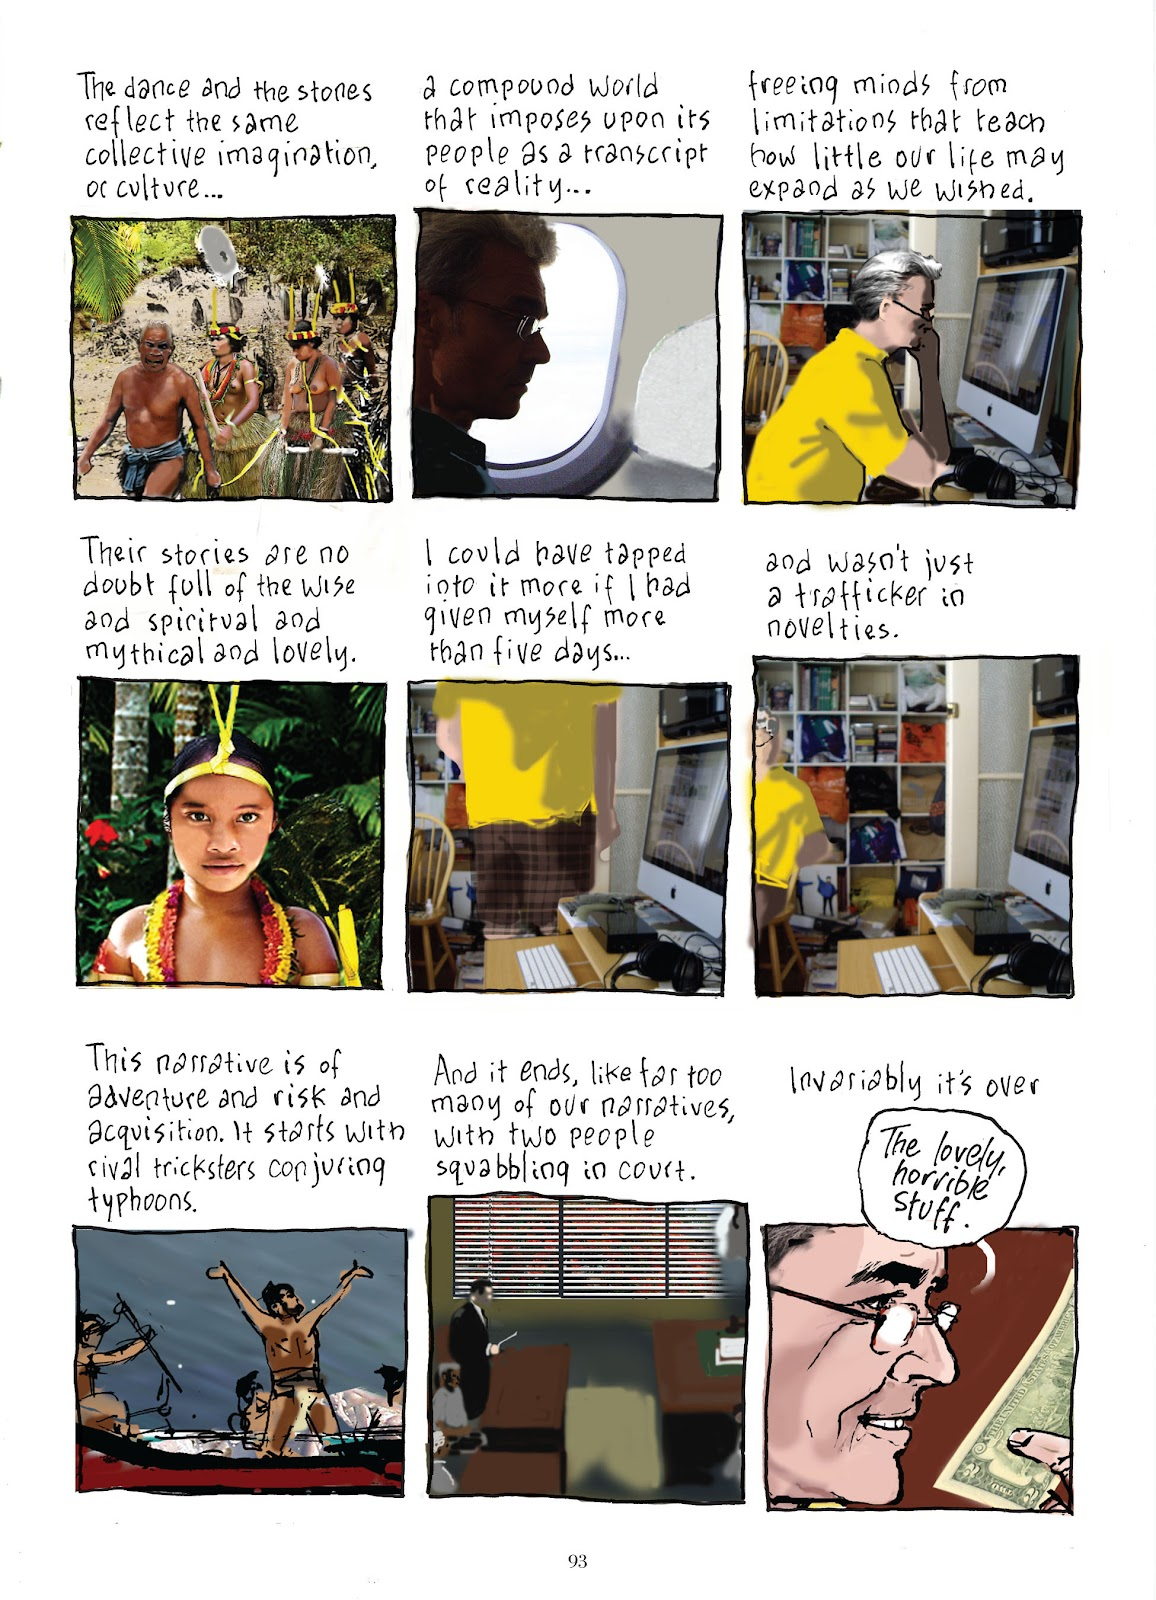 Read online The Lovely Horrible Stuff comic -  Issue # TPB - 95